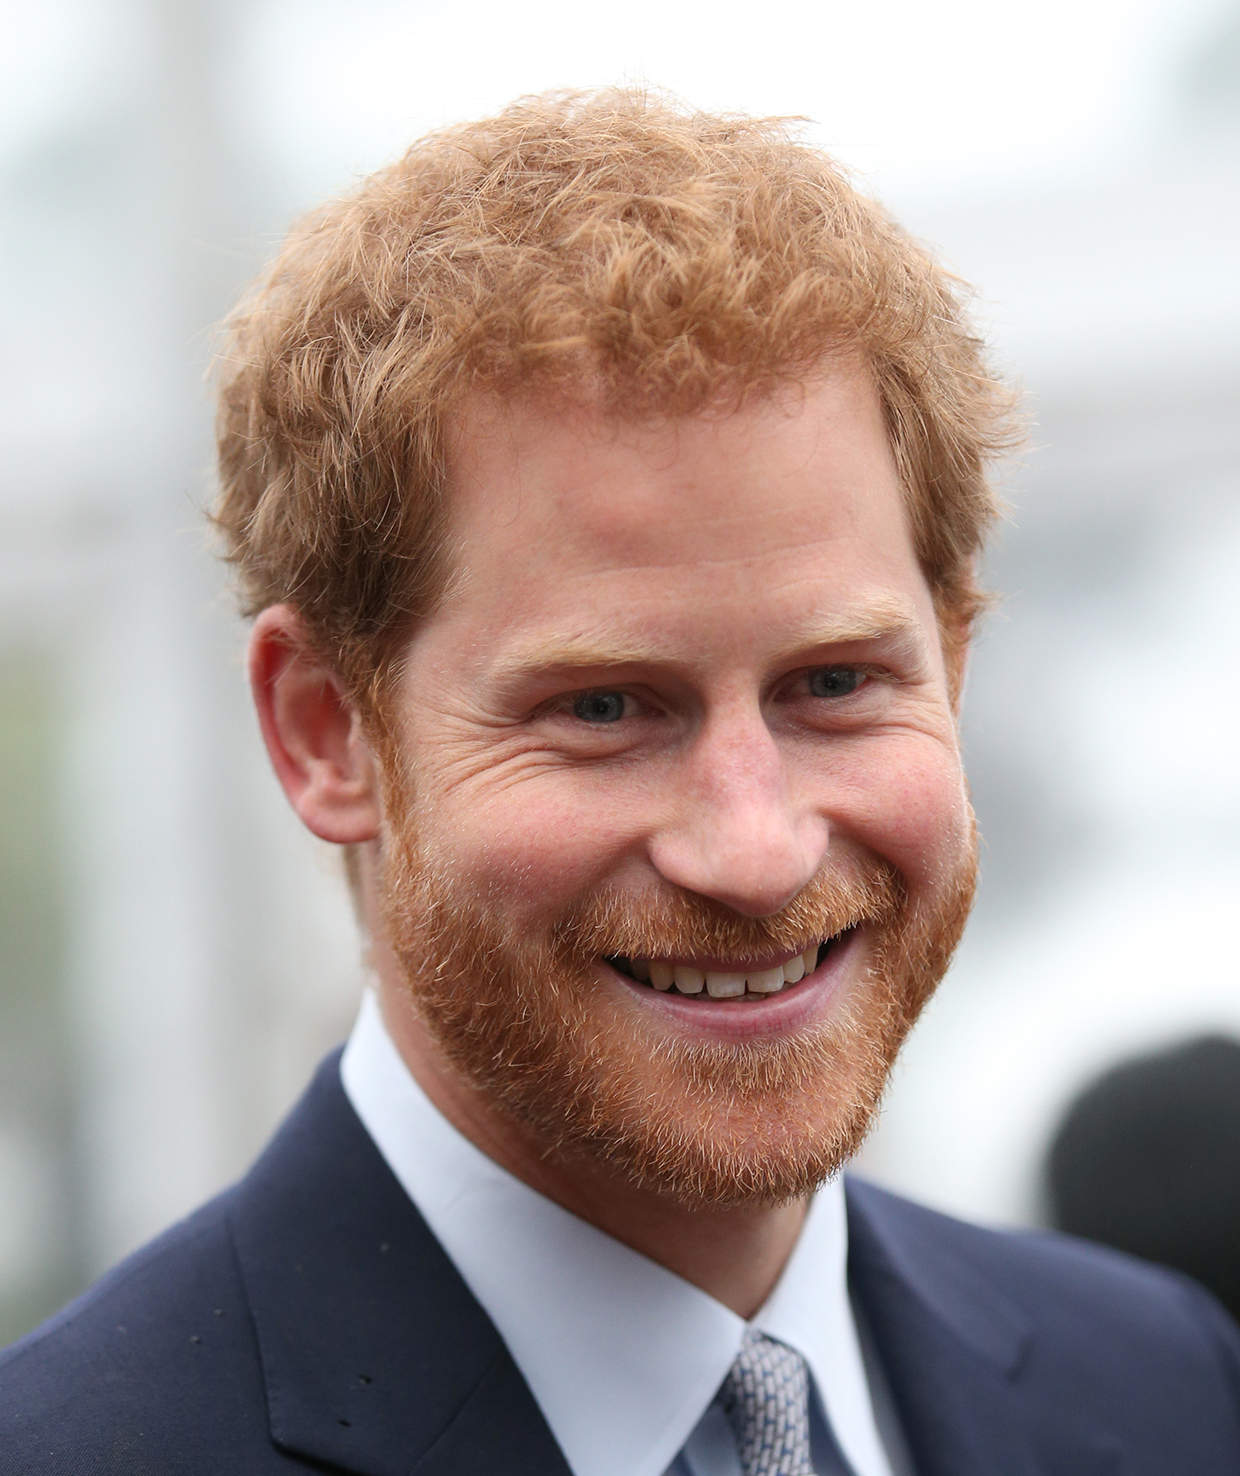 Prince Harry's Name Isn't Actually Harry